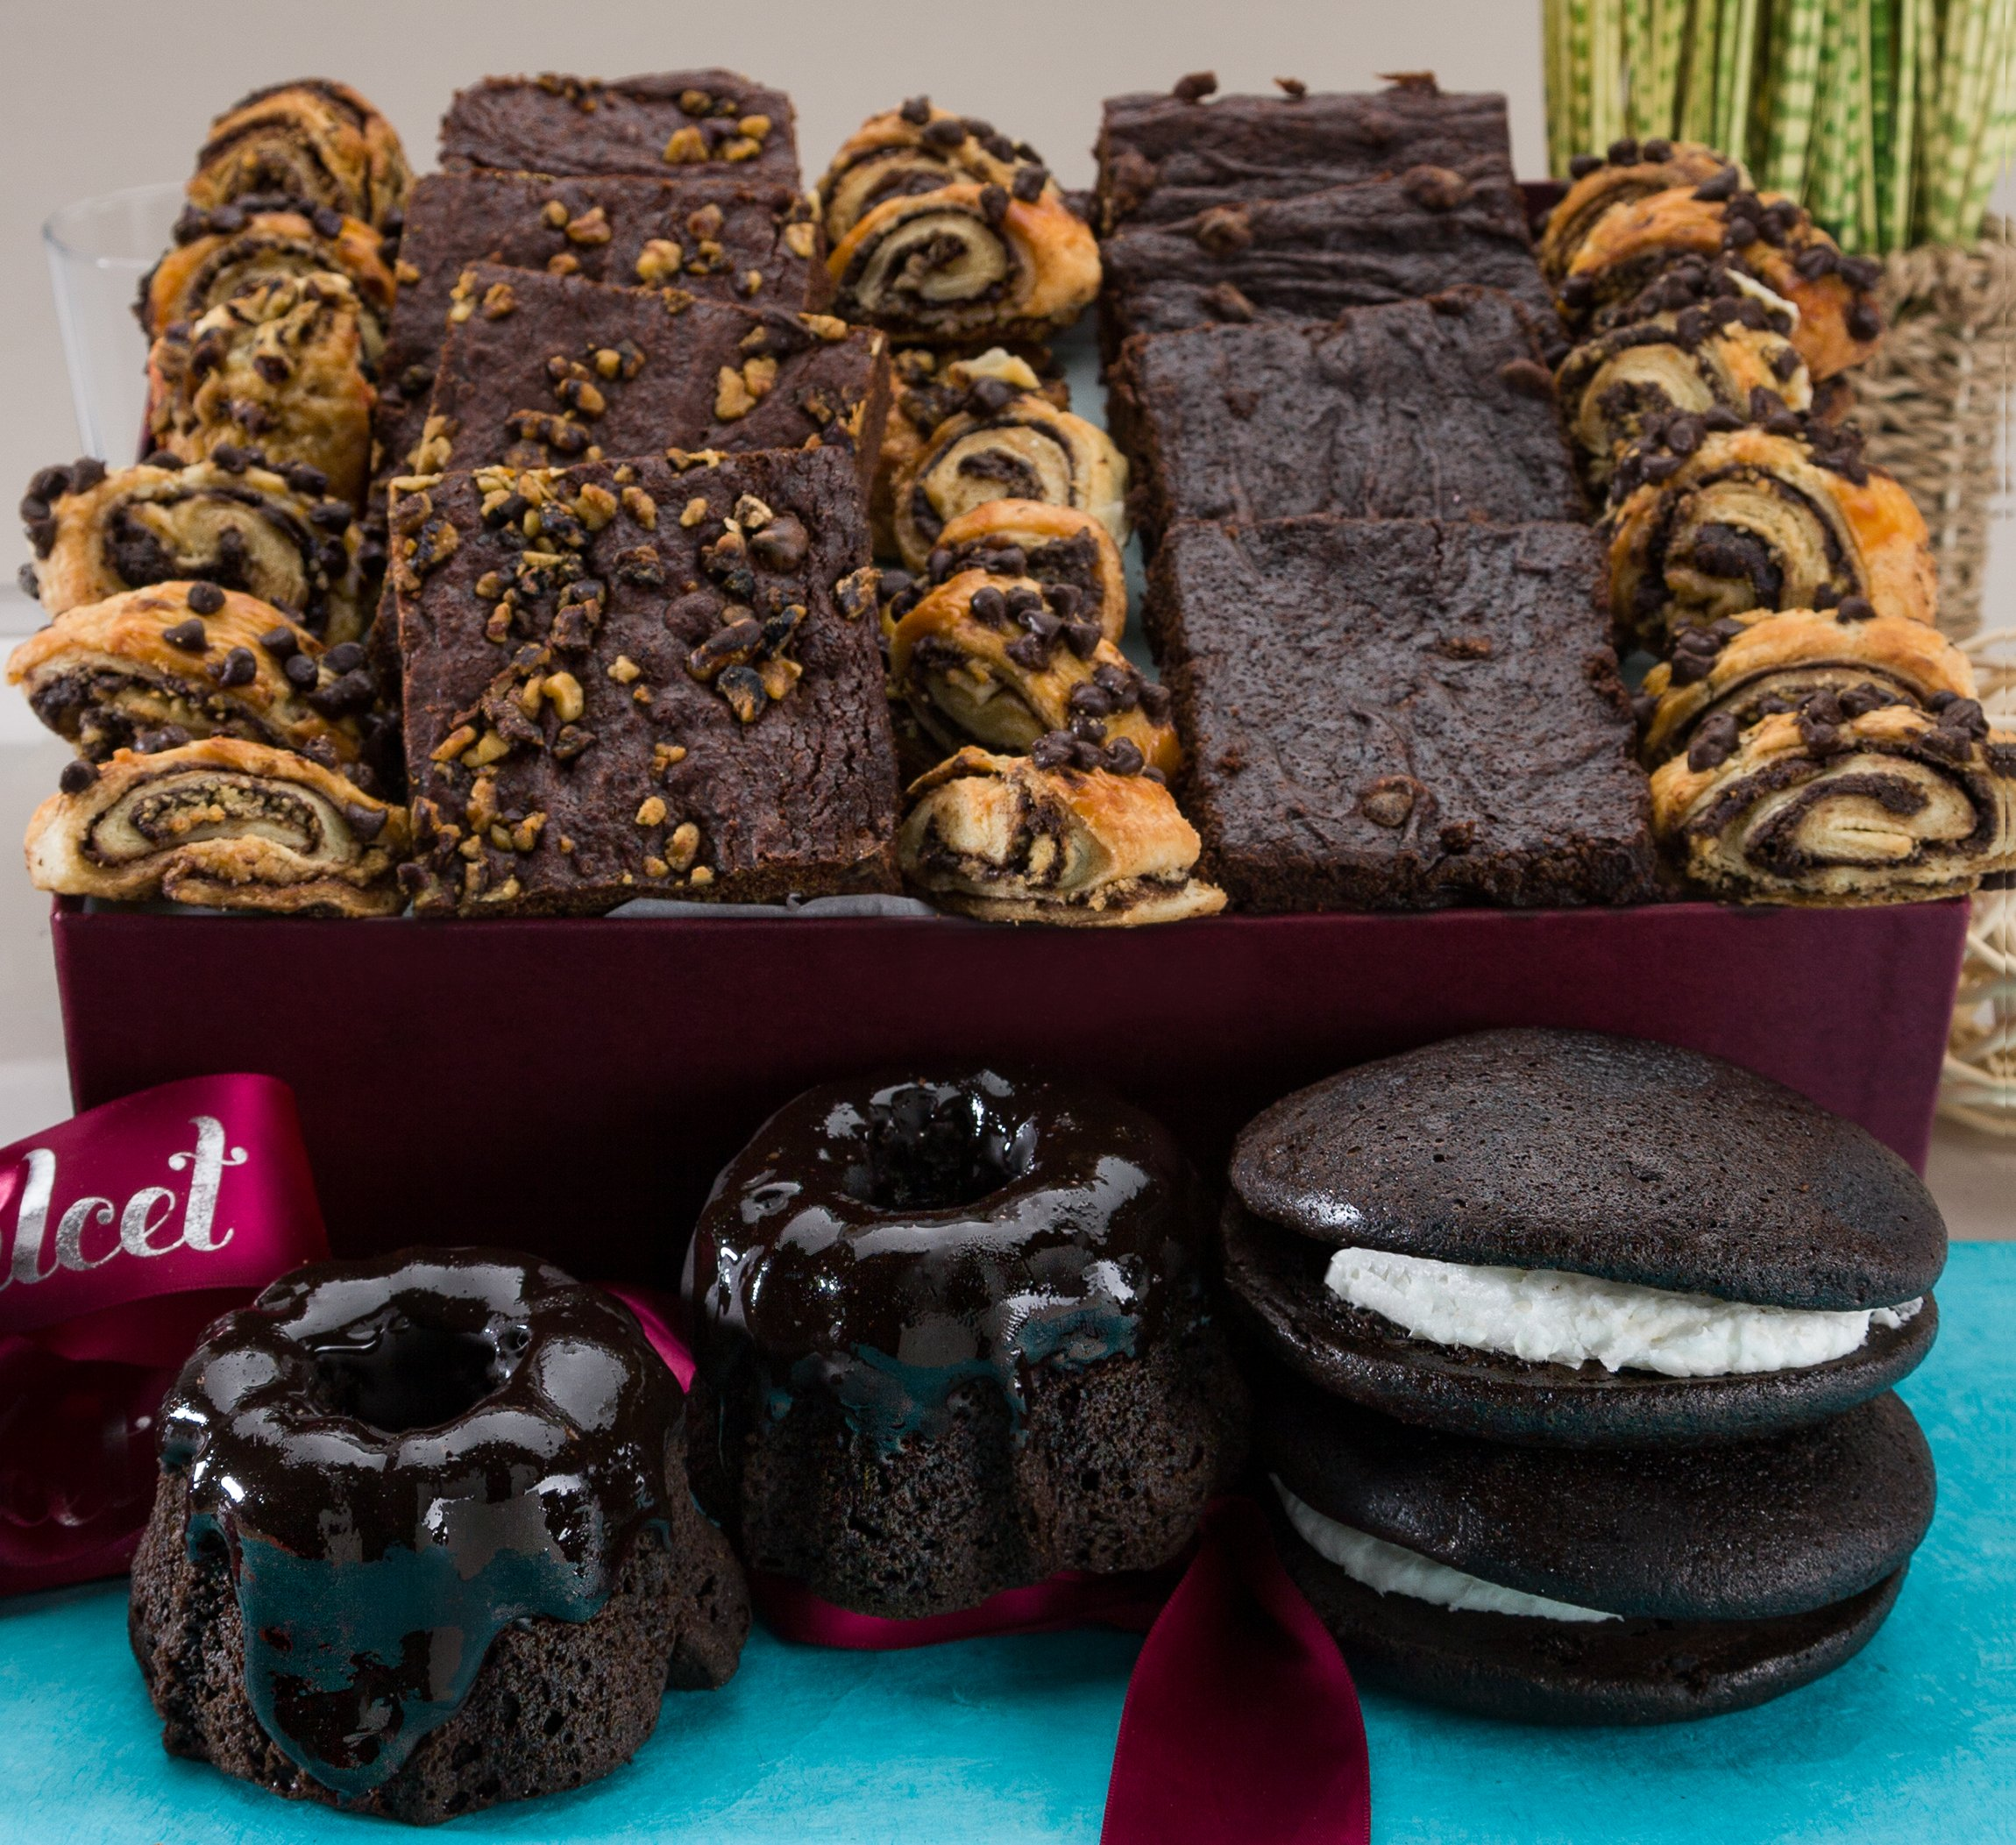 Gourmet Chocolate Lovers Brownie Ganache Bakery Collection Prime mothers Day Gifts Filled with: Chocolate Bundts, Brownies, Chocolate Whoopee Pies, Assorted Rugelach, great gourmet gift basket!